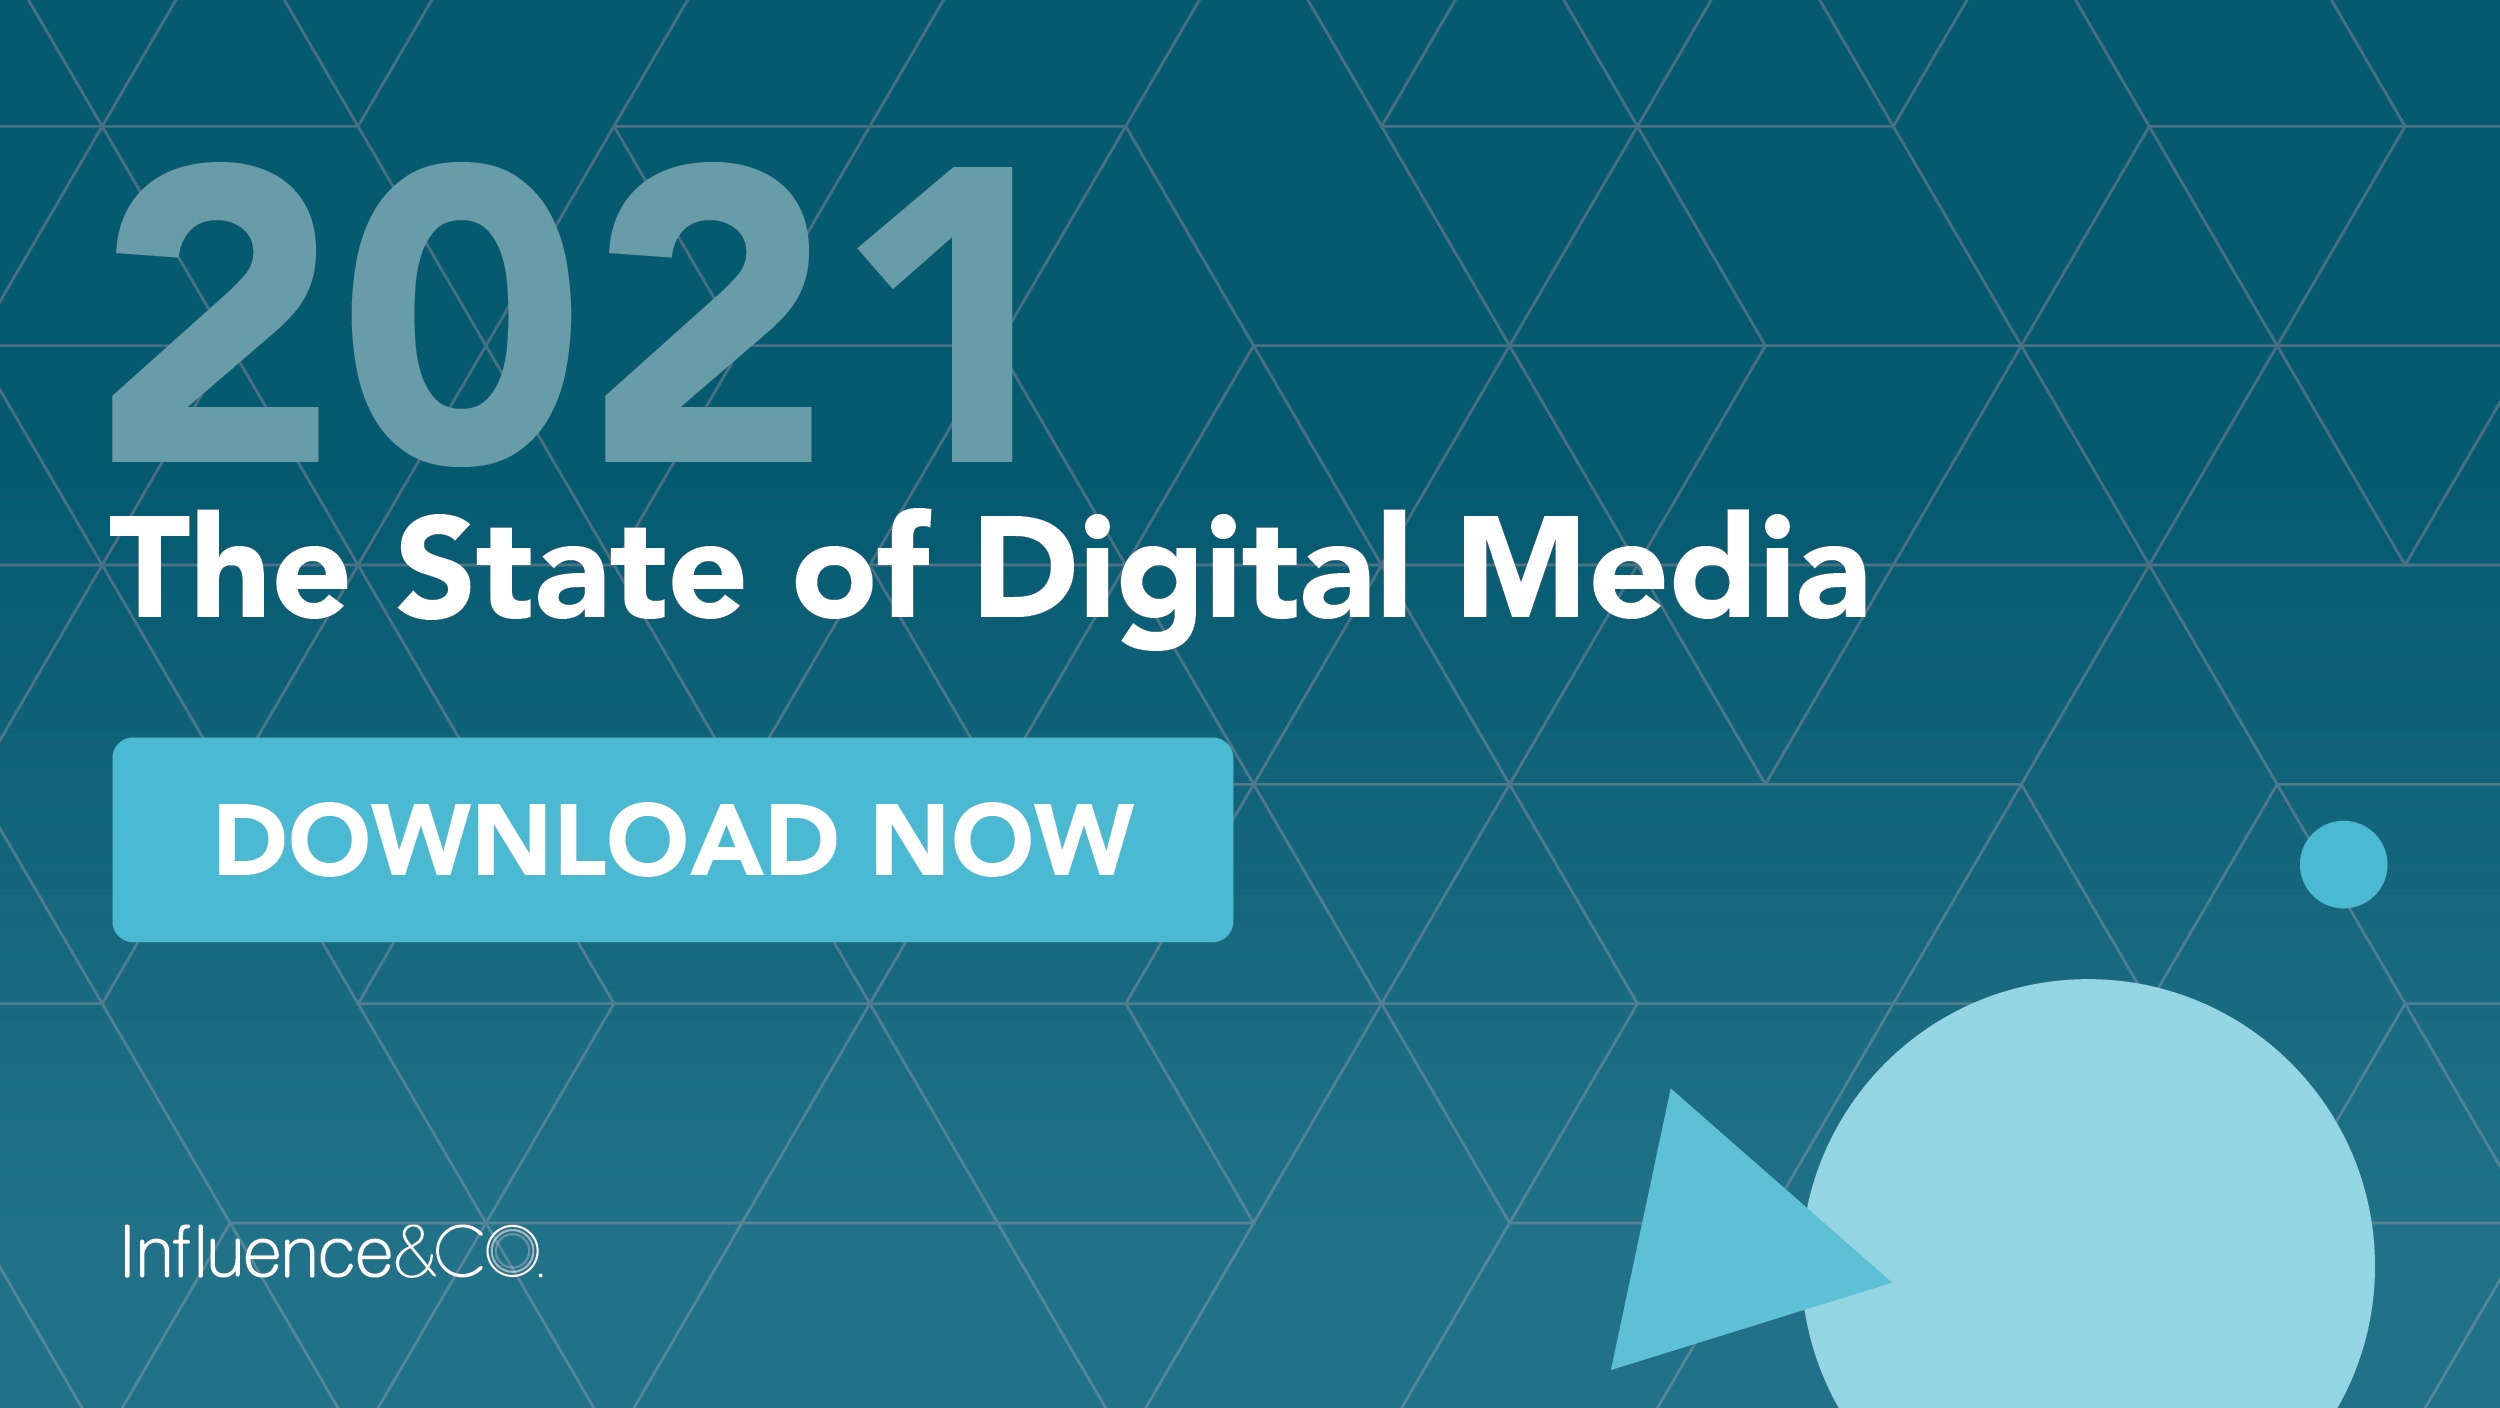 2021 The State of Digital Media. Download the report now.